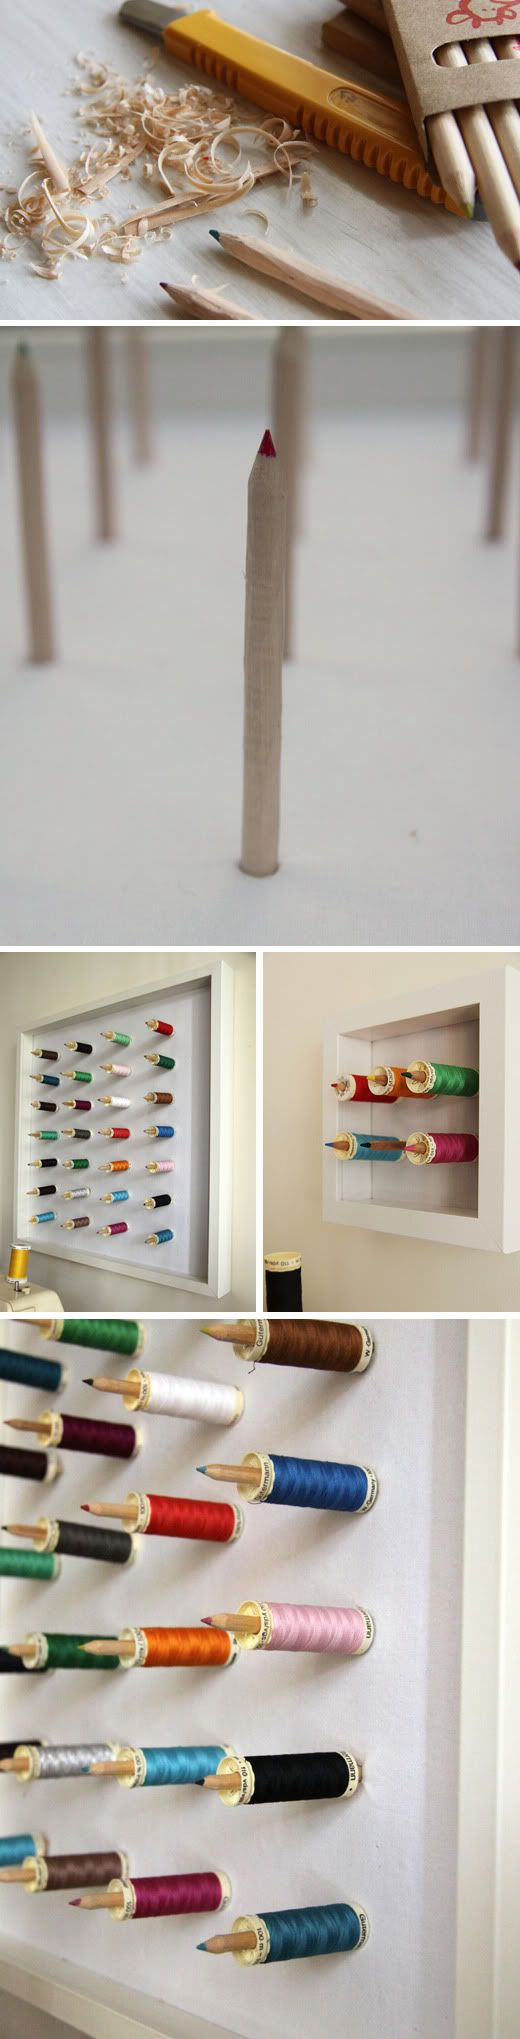 For my future craft room - this is a level of OCD that I can appreciate.